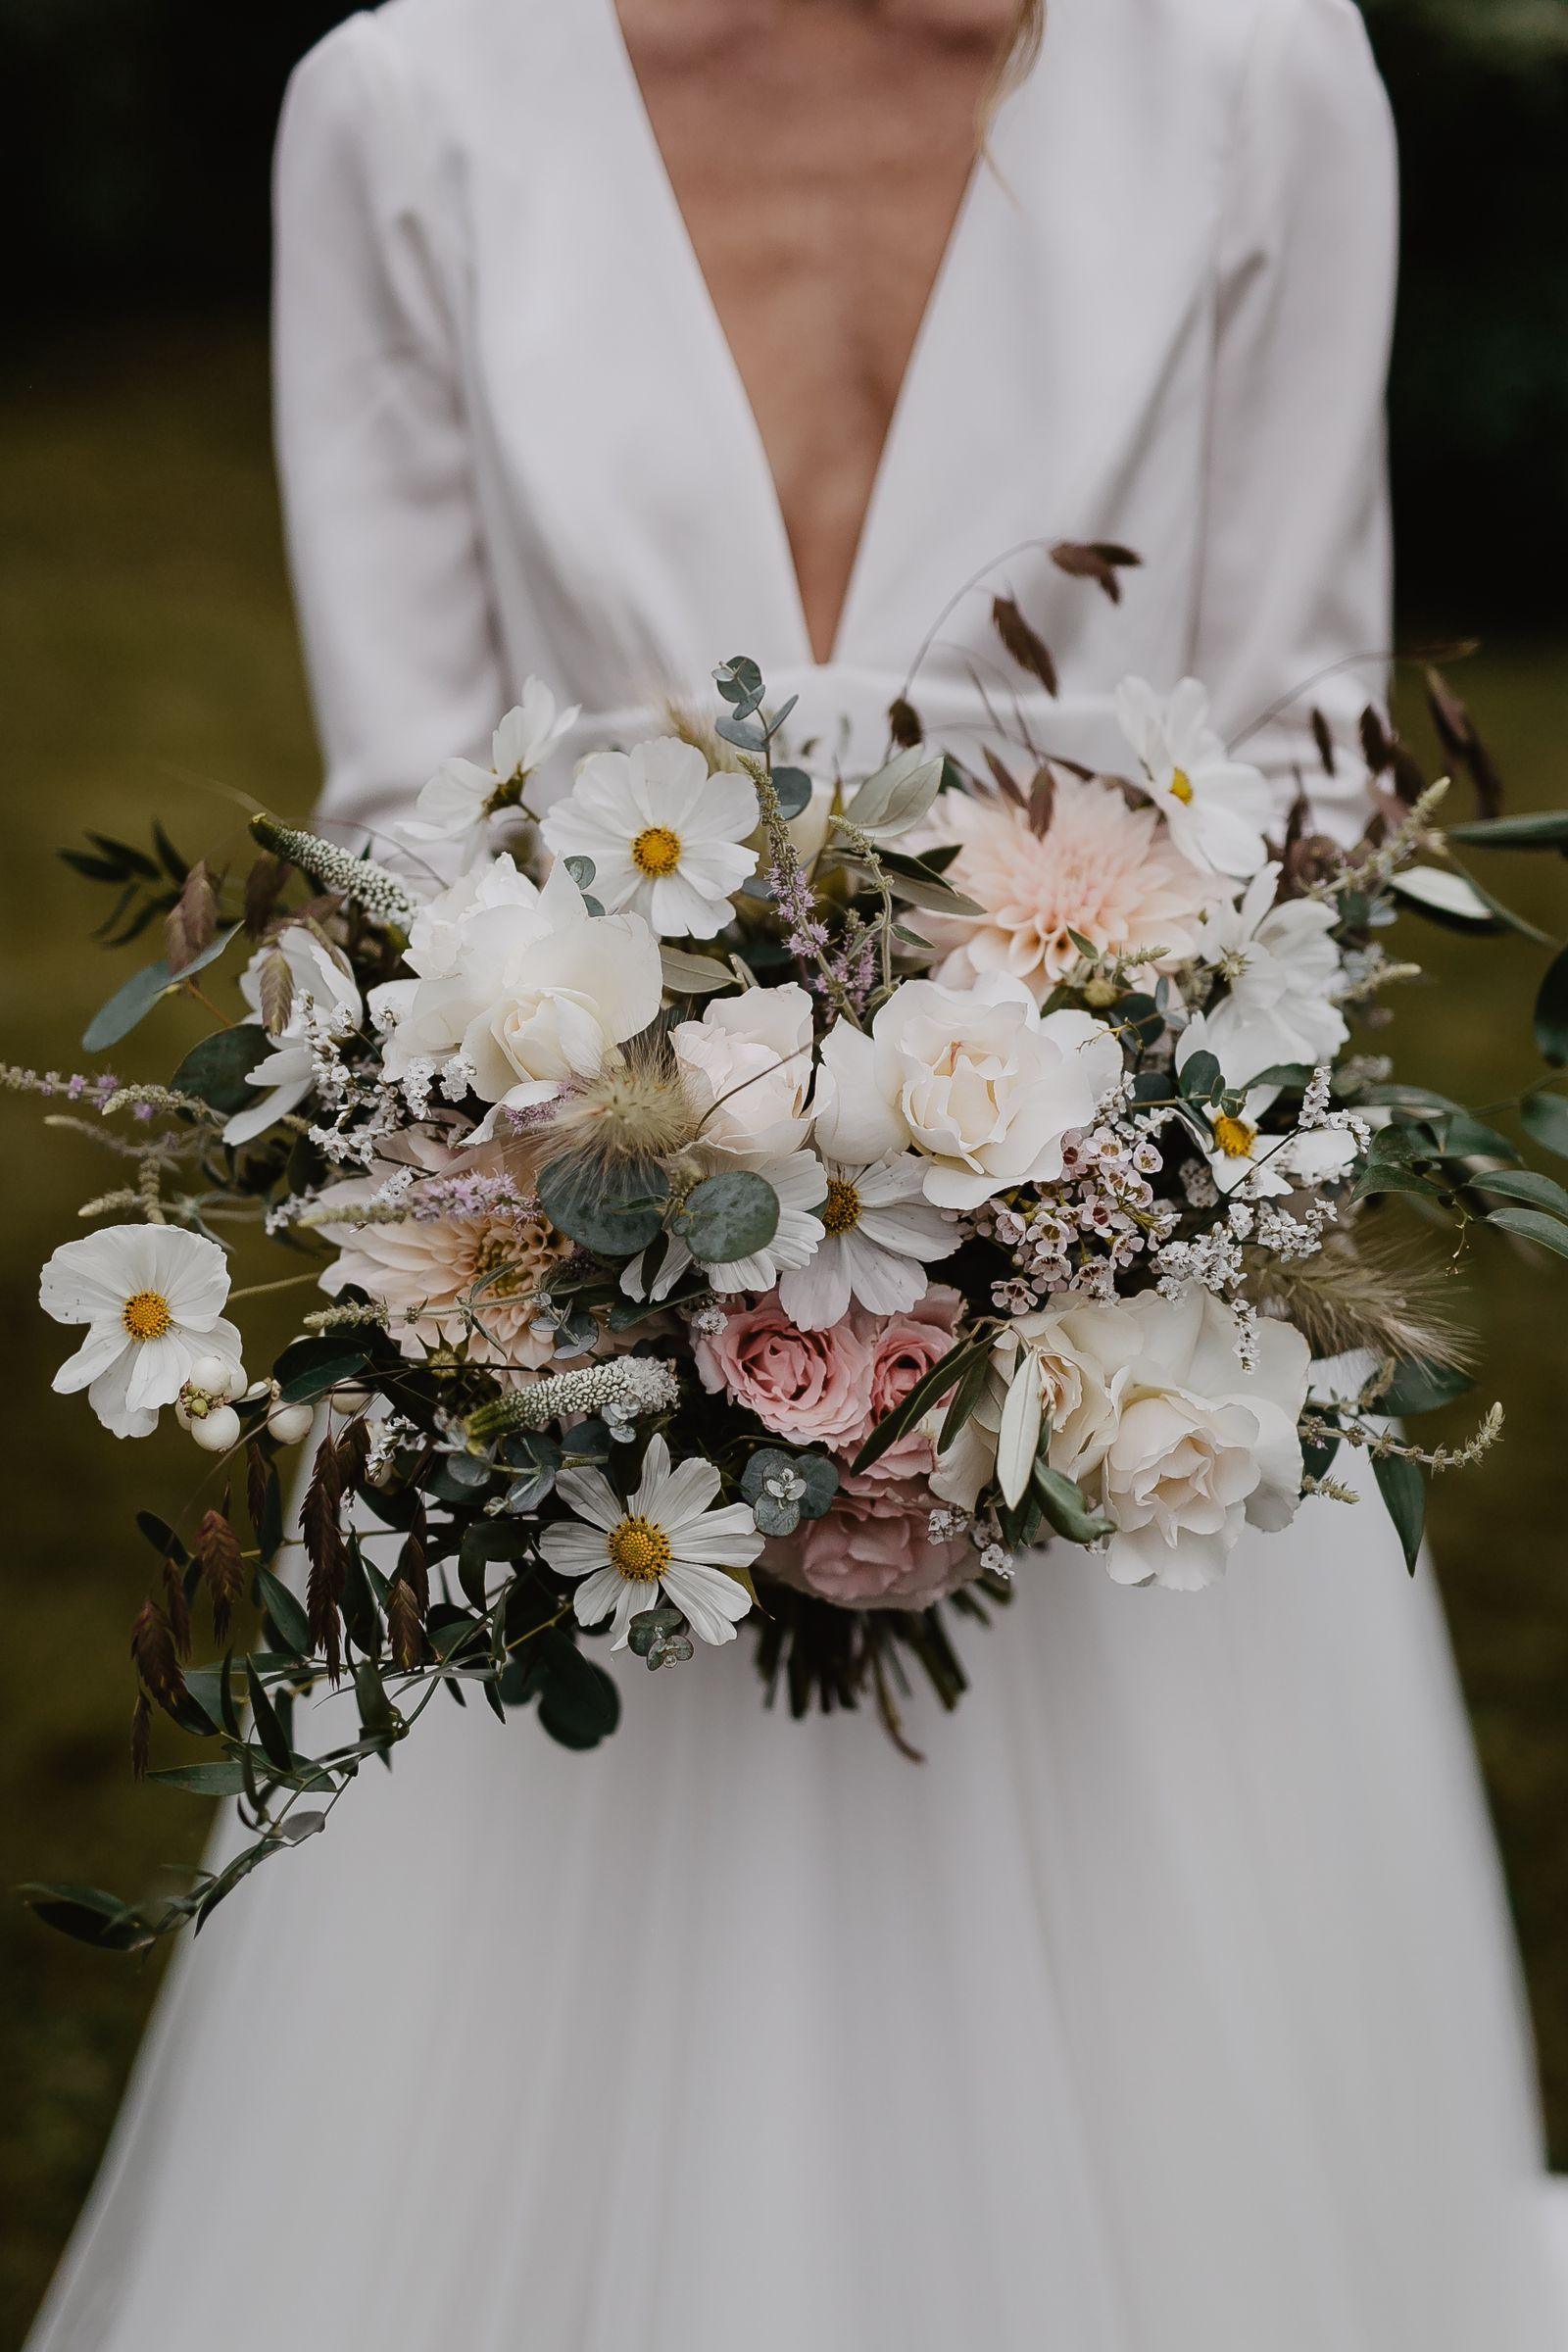 Can you really do your own wedding flowers? (With images